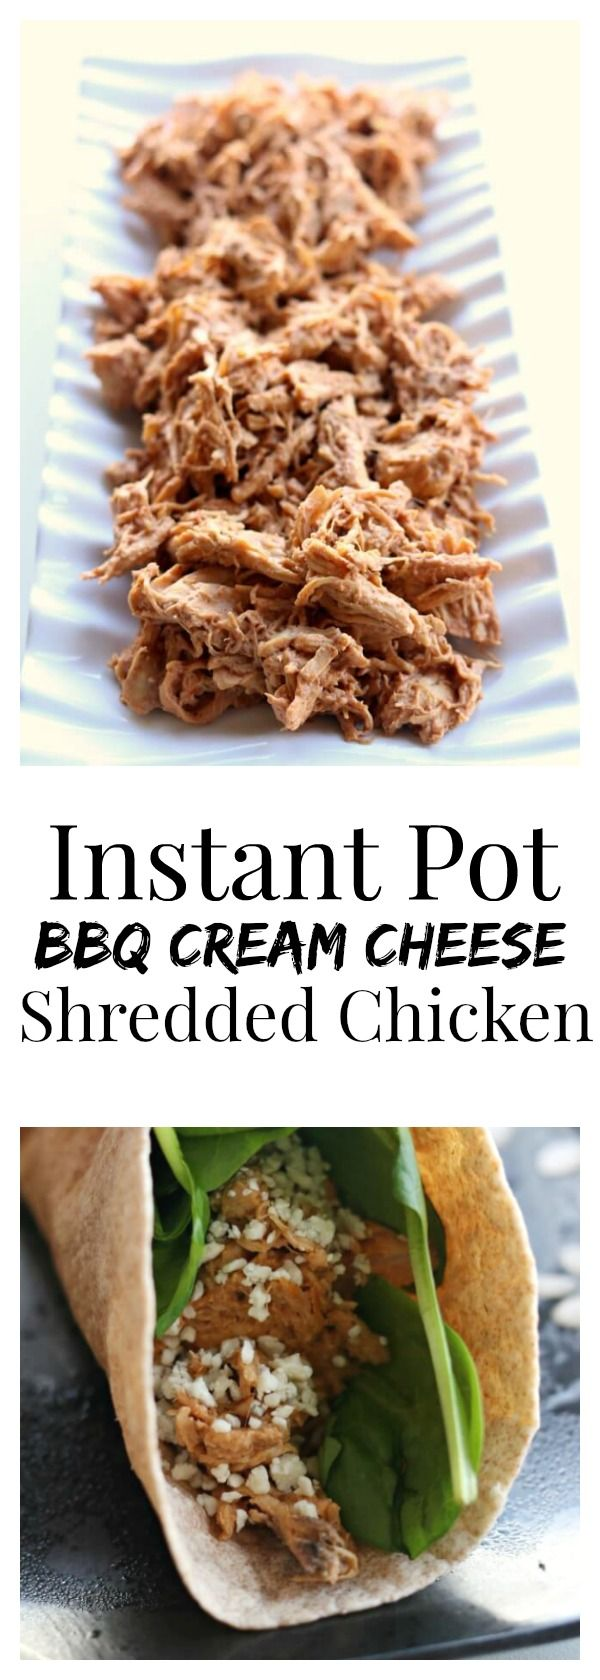 Instant Pot Shredded BBQ Cream Cheese Chicken Recipe–tender chicken breasts cooked in minutes in your pressure cooker and then mixed with cream cheese and BBQ sauce. This 3 ingredient chicken is addictive! Perfect to serve on sandwiches, rolled up in tortillas or on pizza.